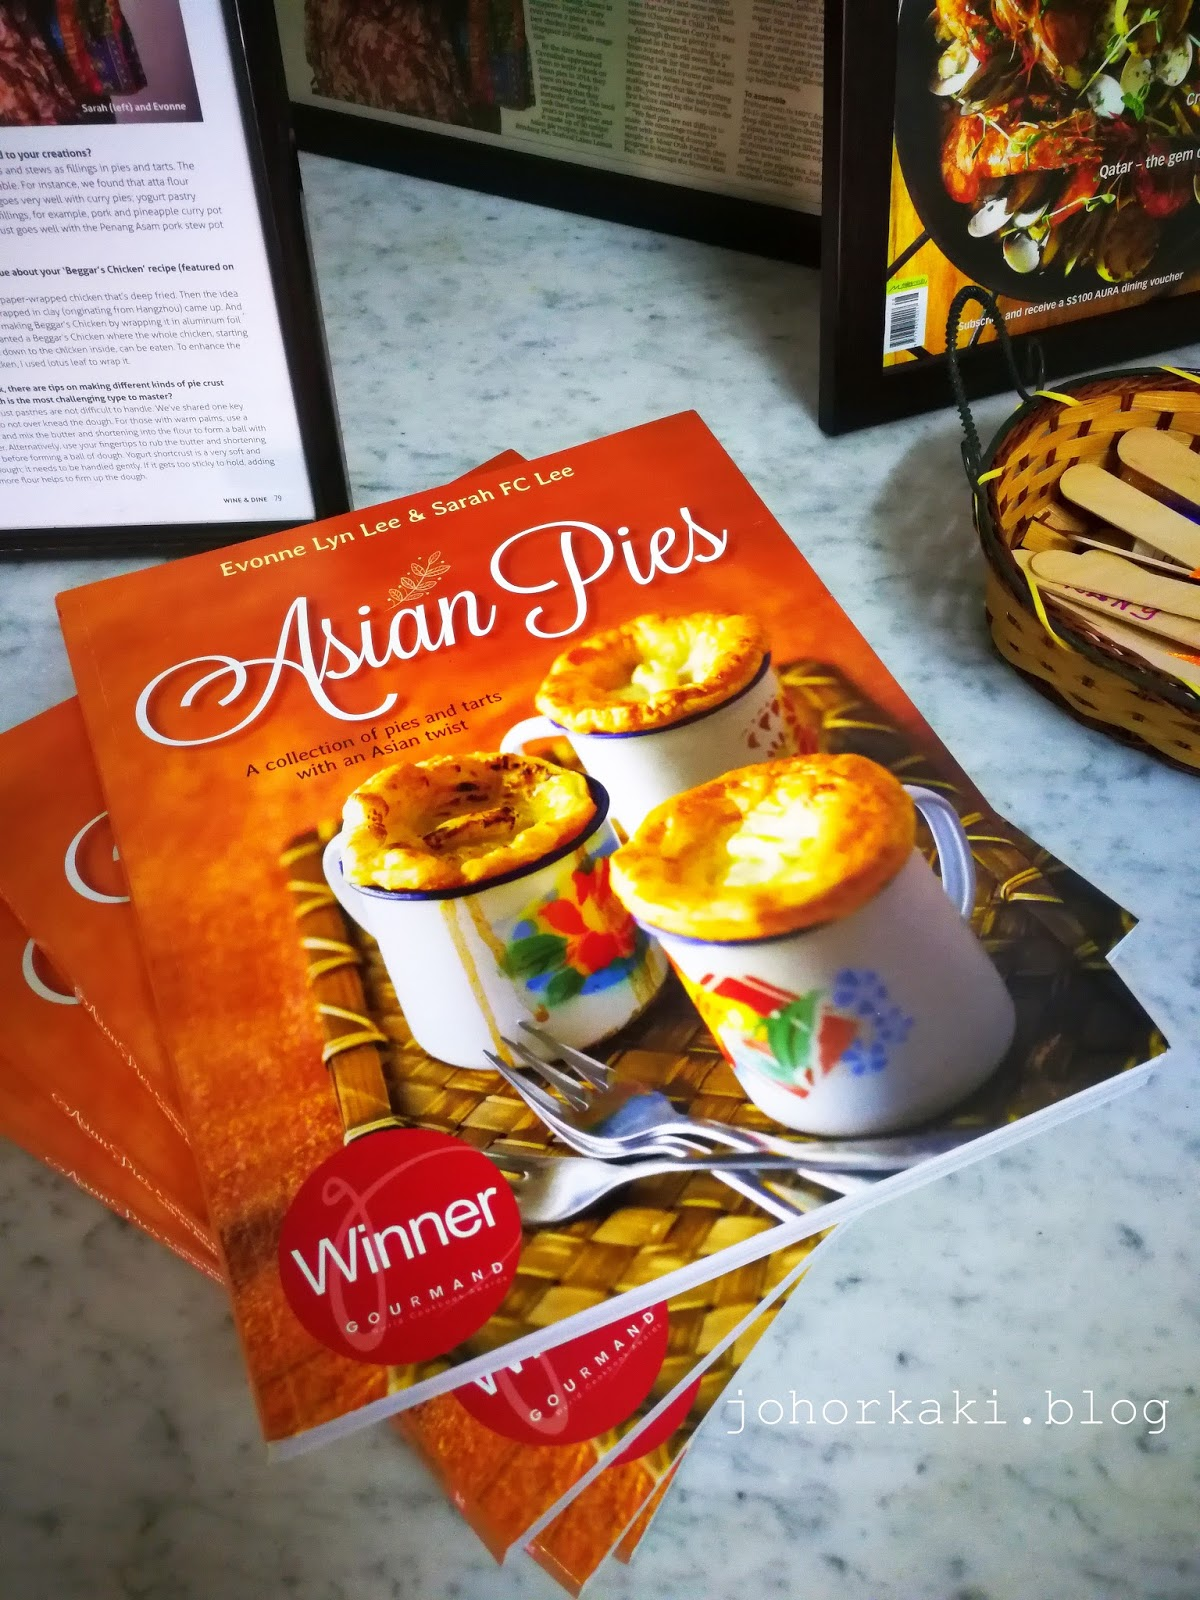 Asian pies by evonne sarah best asian cuisine book in for Asian cuisine books